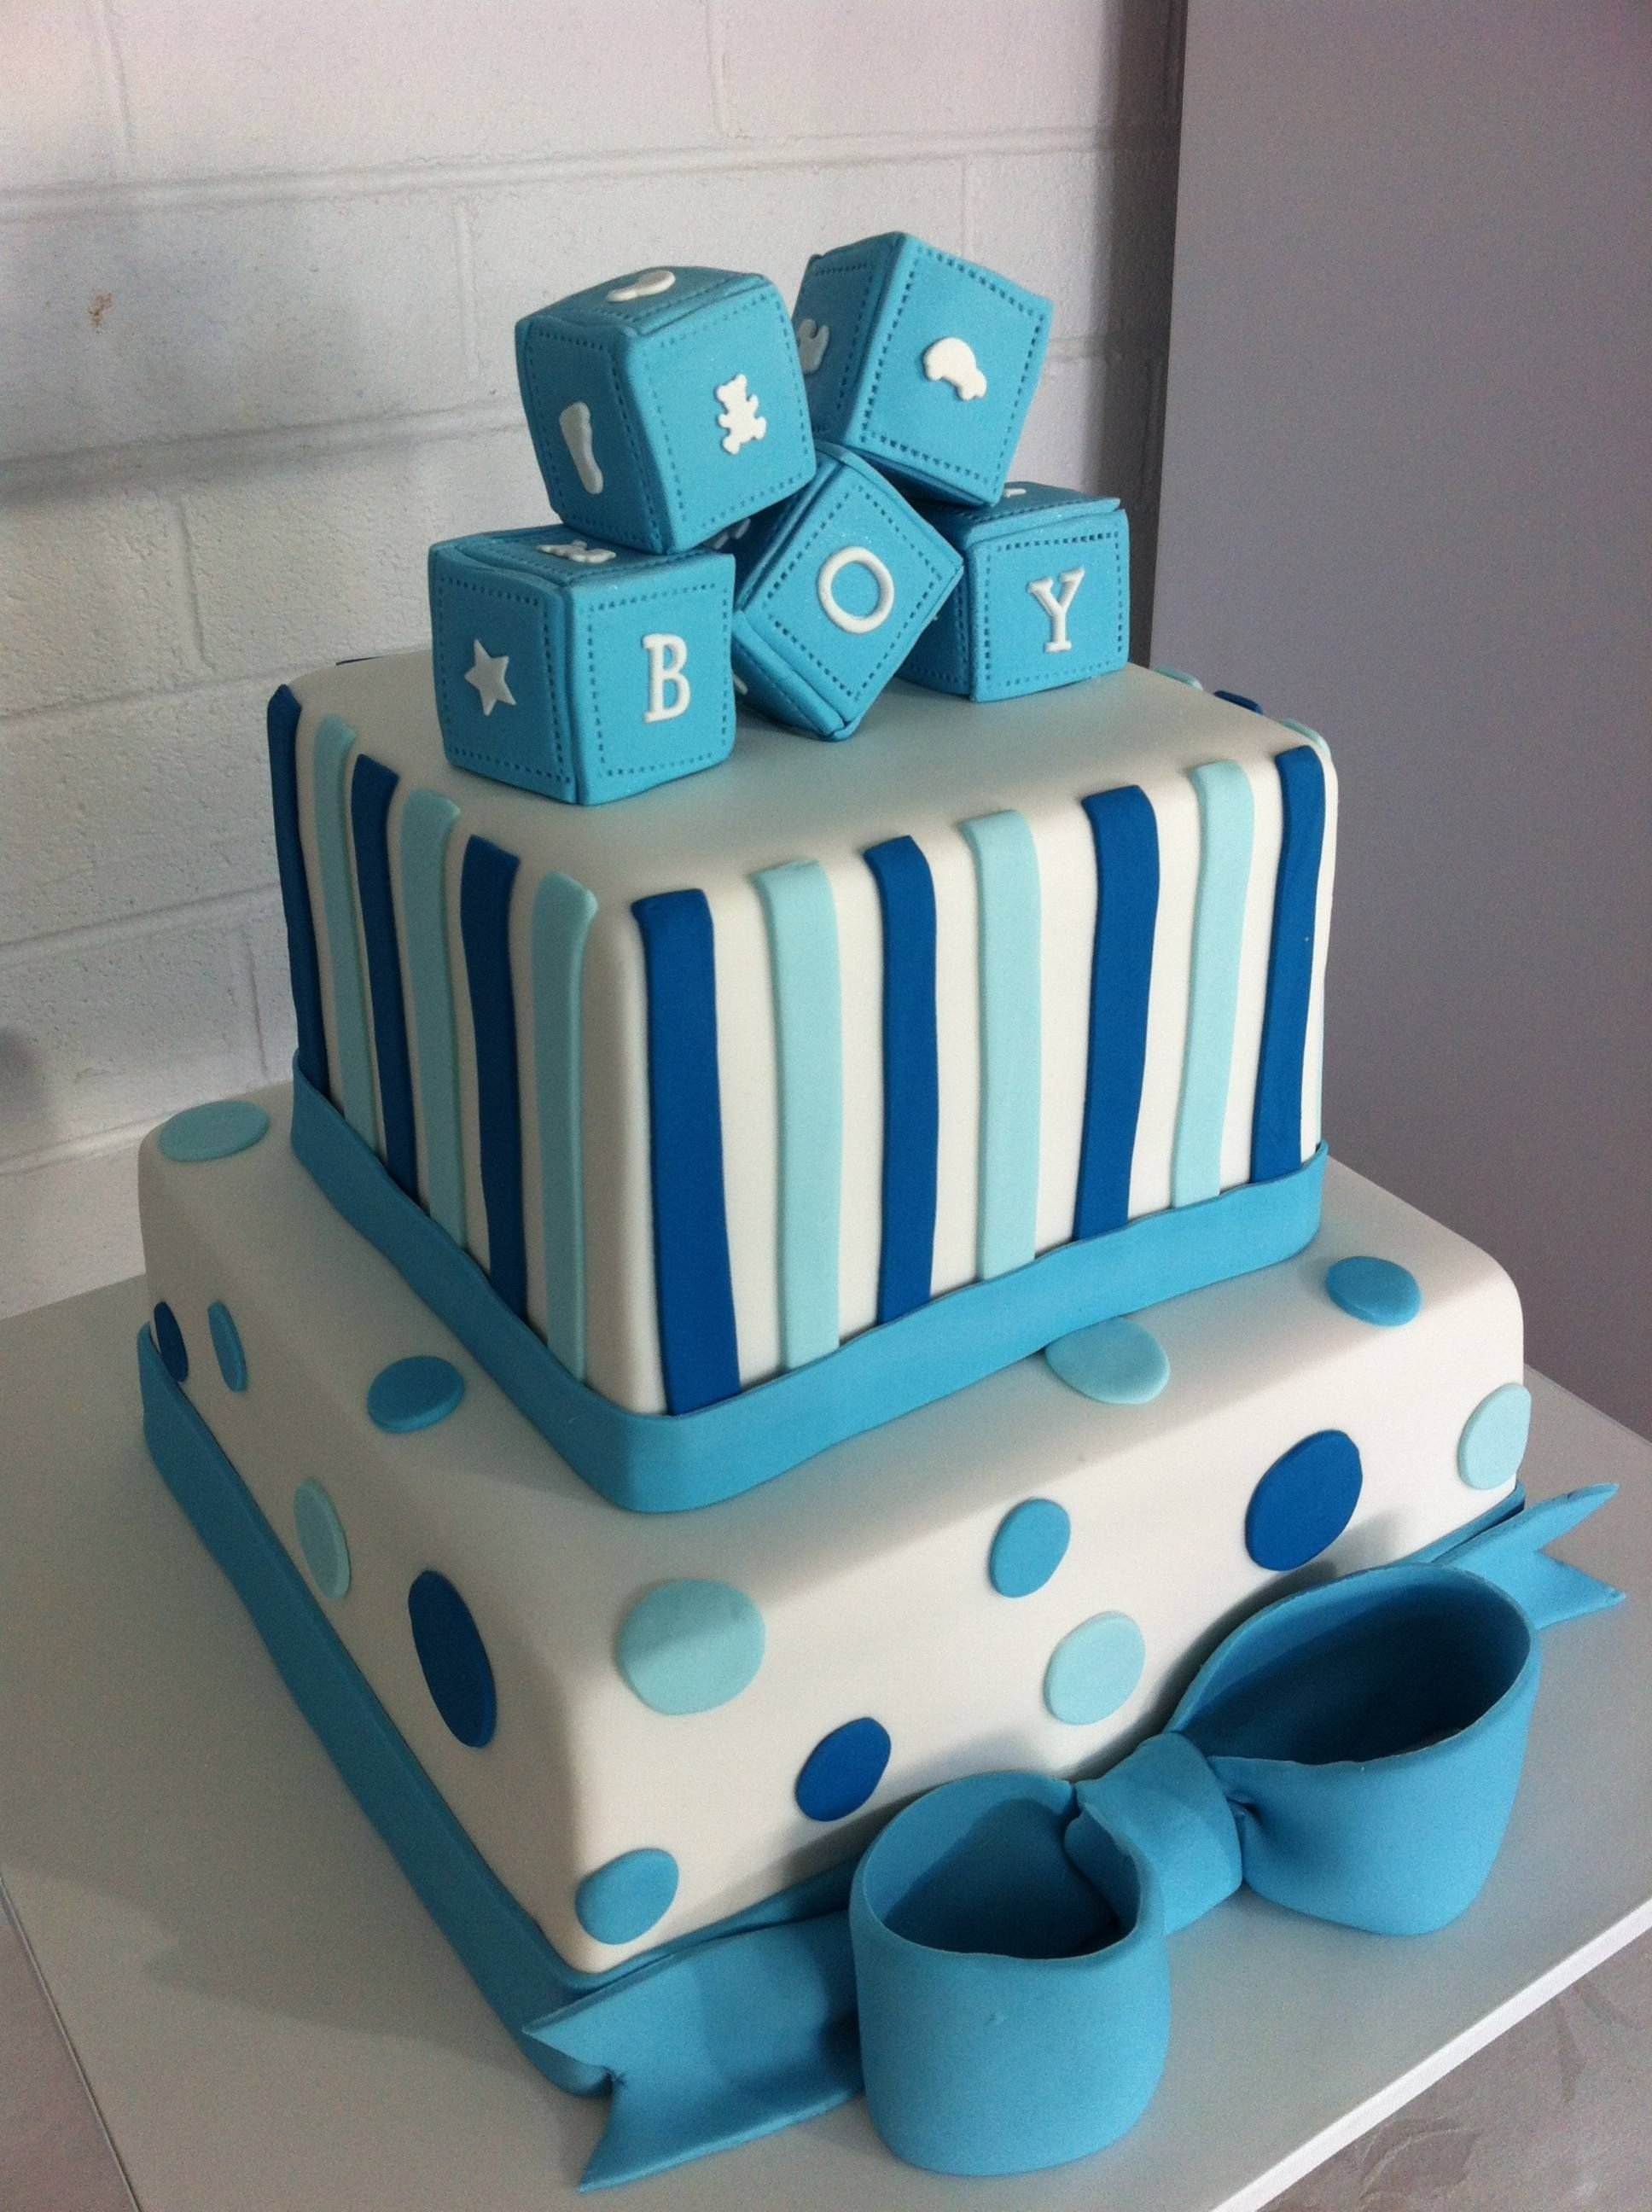 10 Great Baby Shower Cake Ideas For Boy boy baby shower cakes cakesdesign our new creations other 7 2020